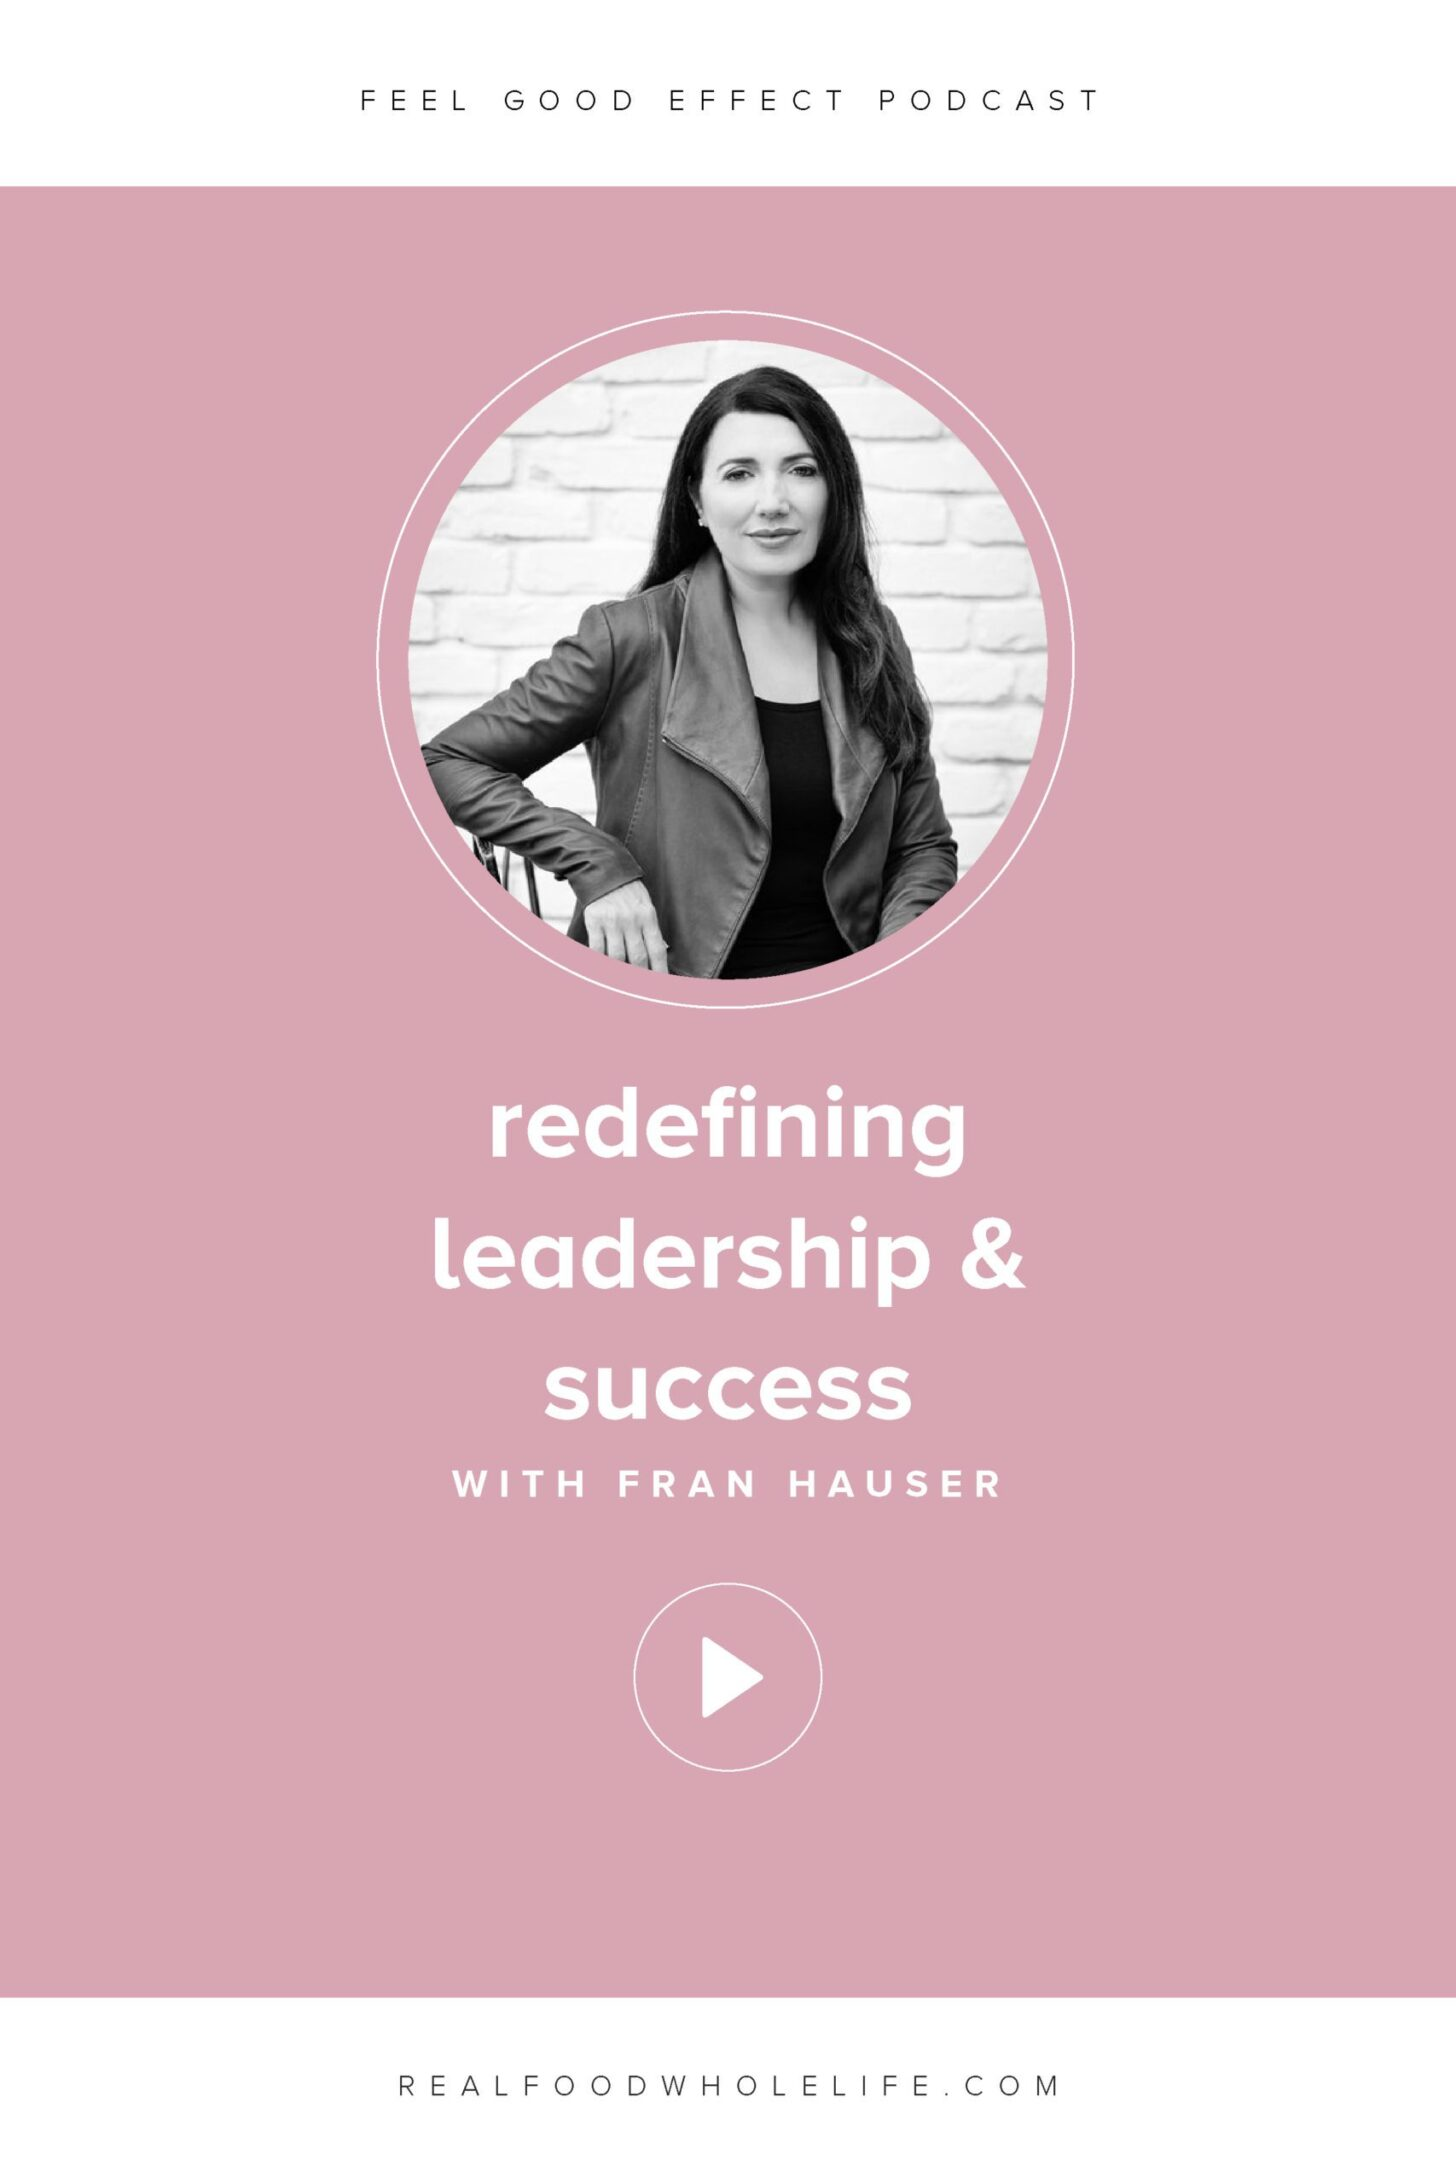 Image of Fran Hauser on the Feel Good Effect Podcast